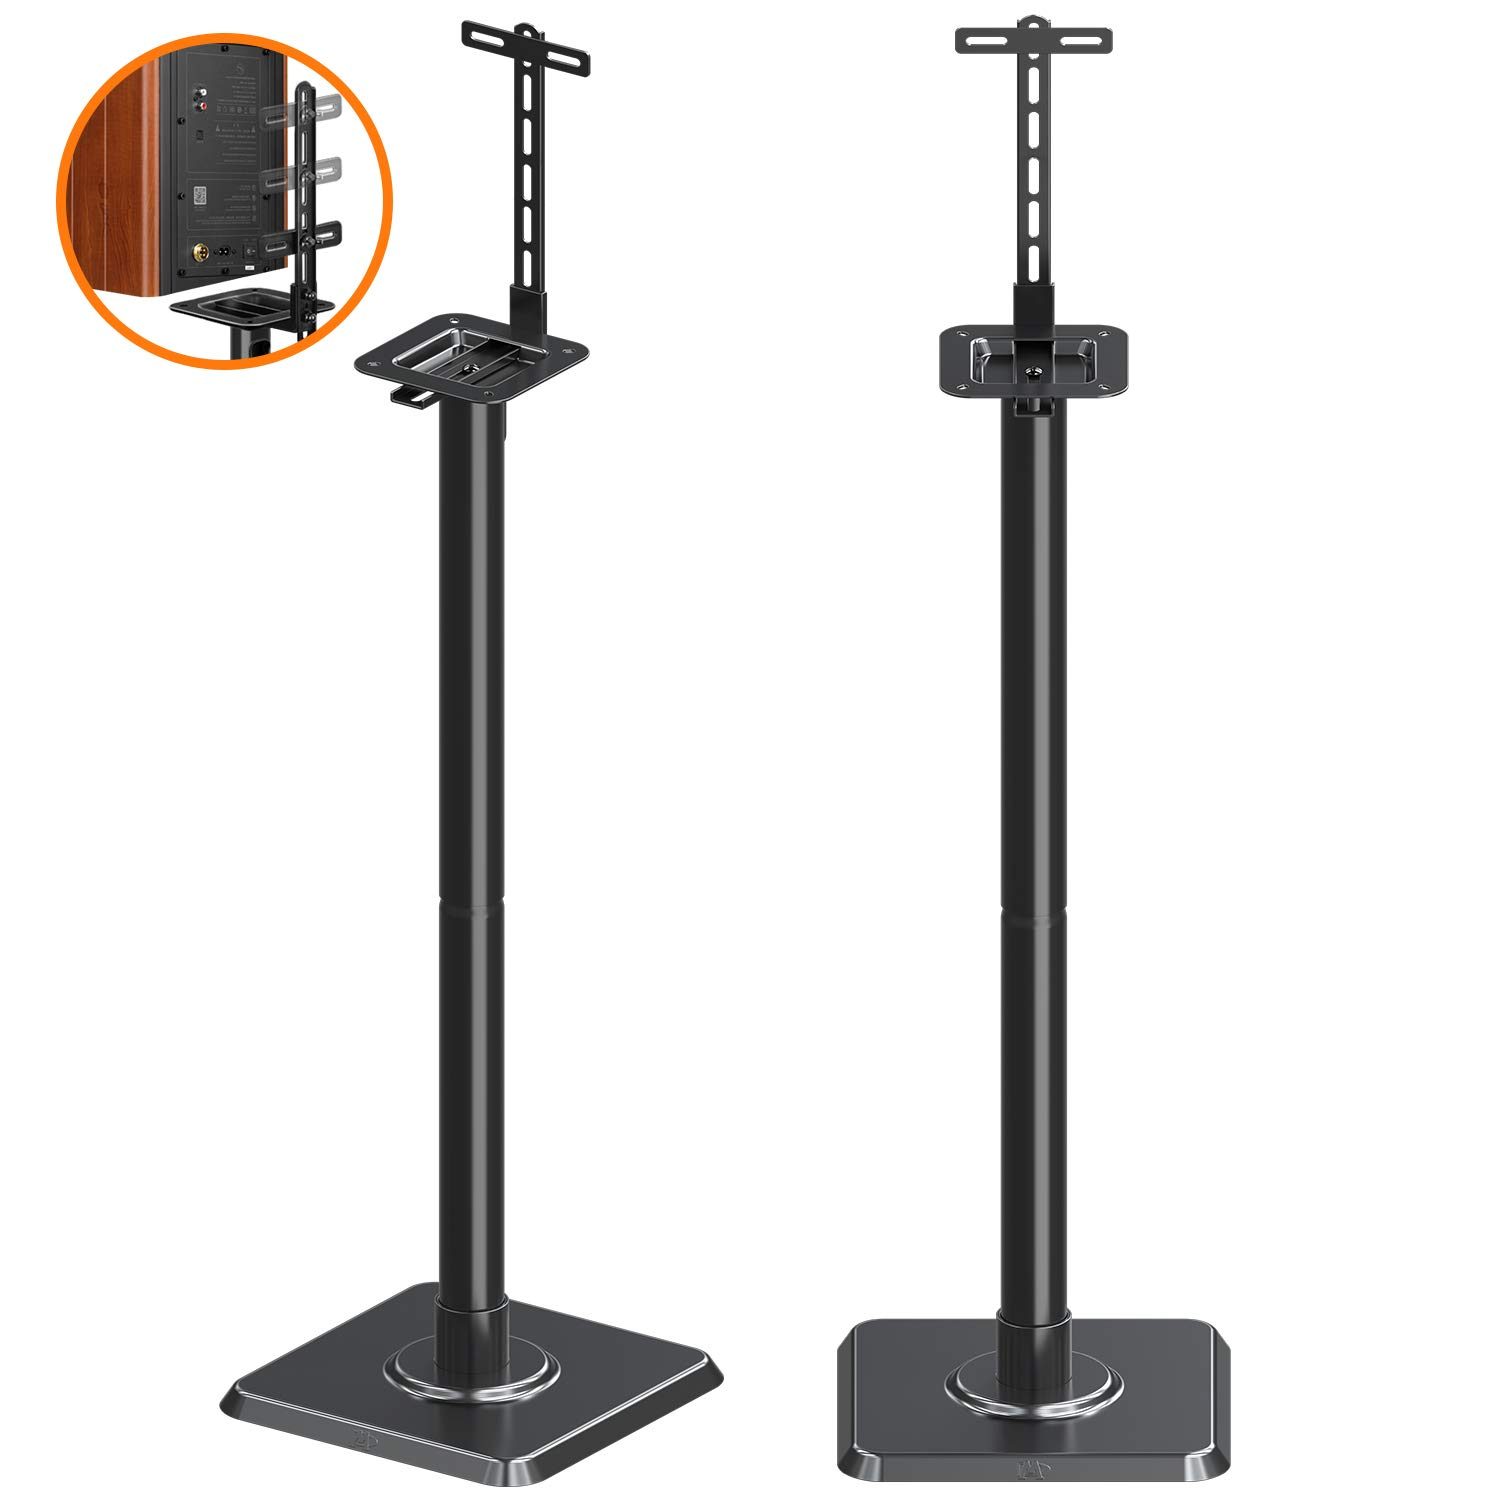 Mounting Dream Speaker Stands Bookshelf Speaker Stands for Universal Satellite Speakers, Set of 2 for Bose Polk JBL Sony Yamaha and Others - 11 lbs Capacity by Mounting Dream